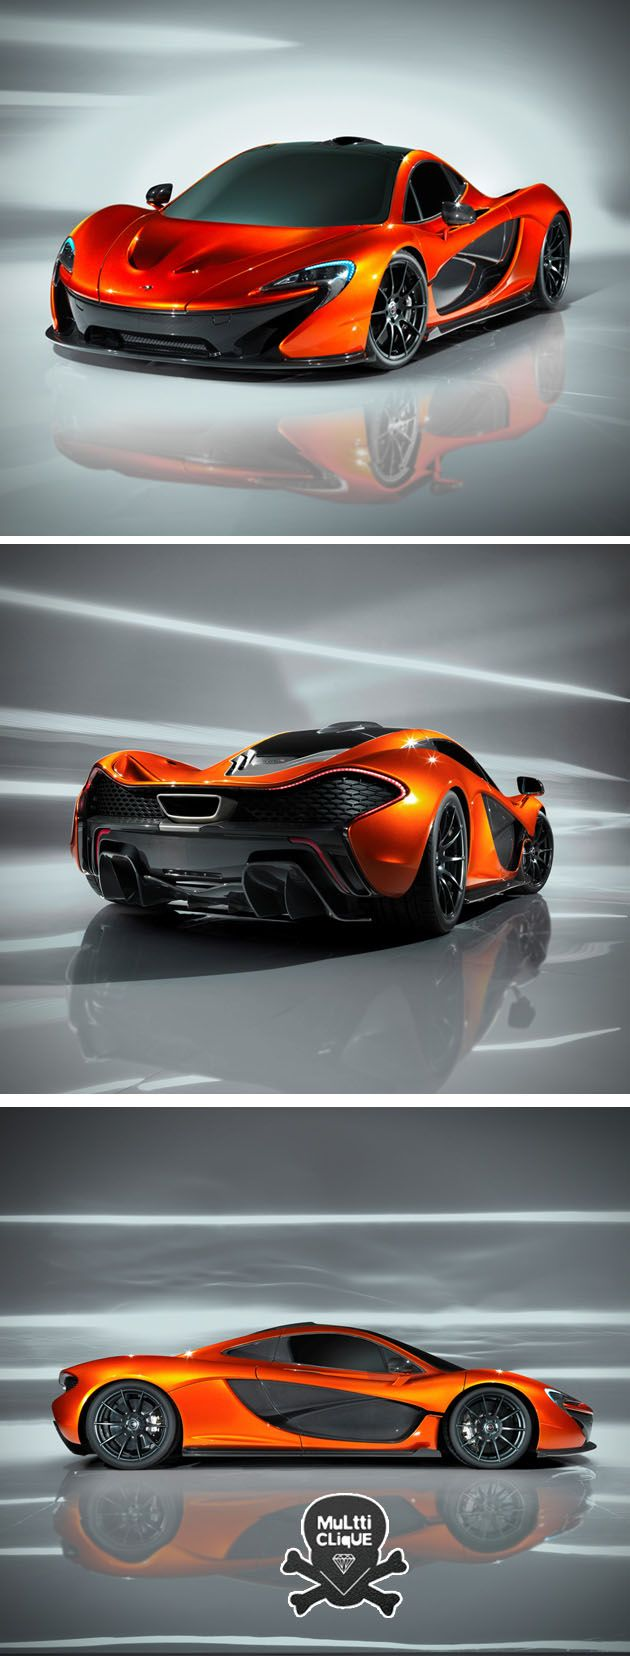 The McLaren P1, without a doubt the most enticing and alluring super car I've yet to lay eyes on. The only super car I would actually deem worthy of purchase, and worth the price.